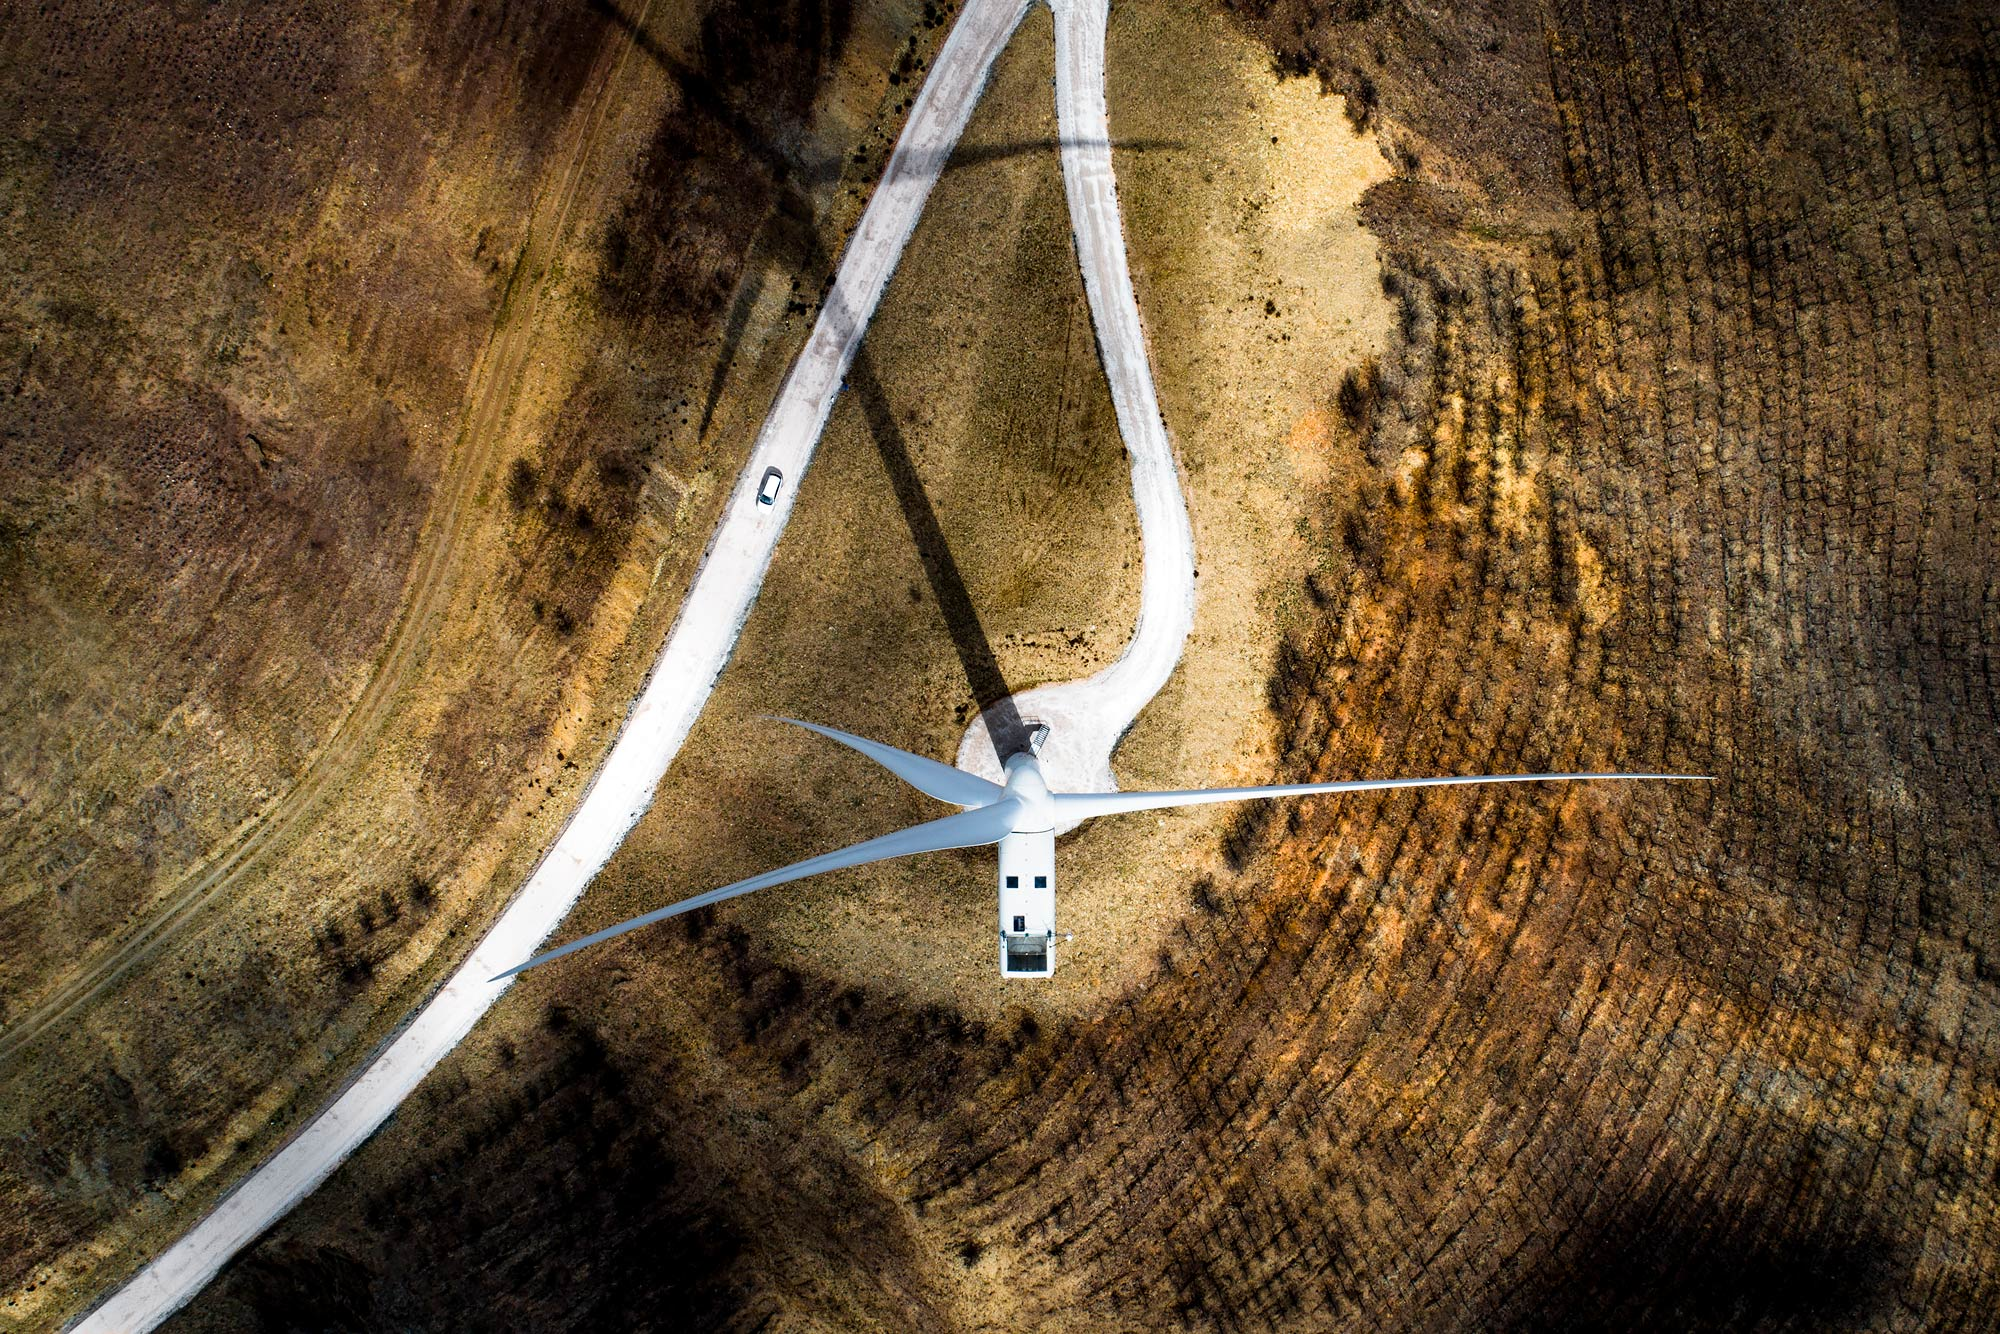 Sixty meter wind turbine from above aerial